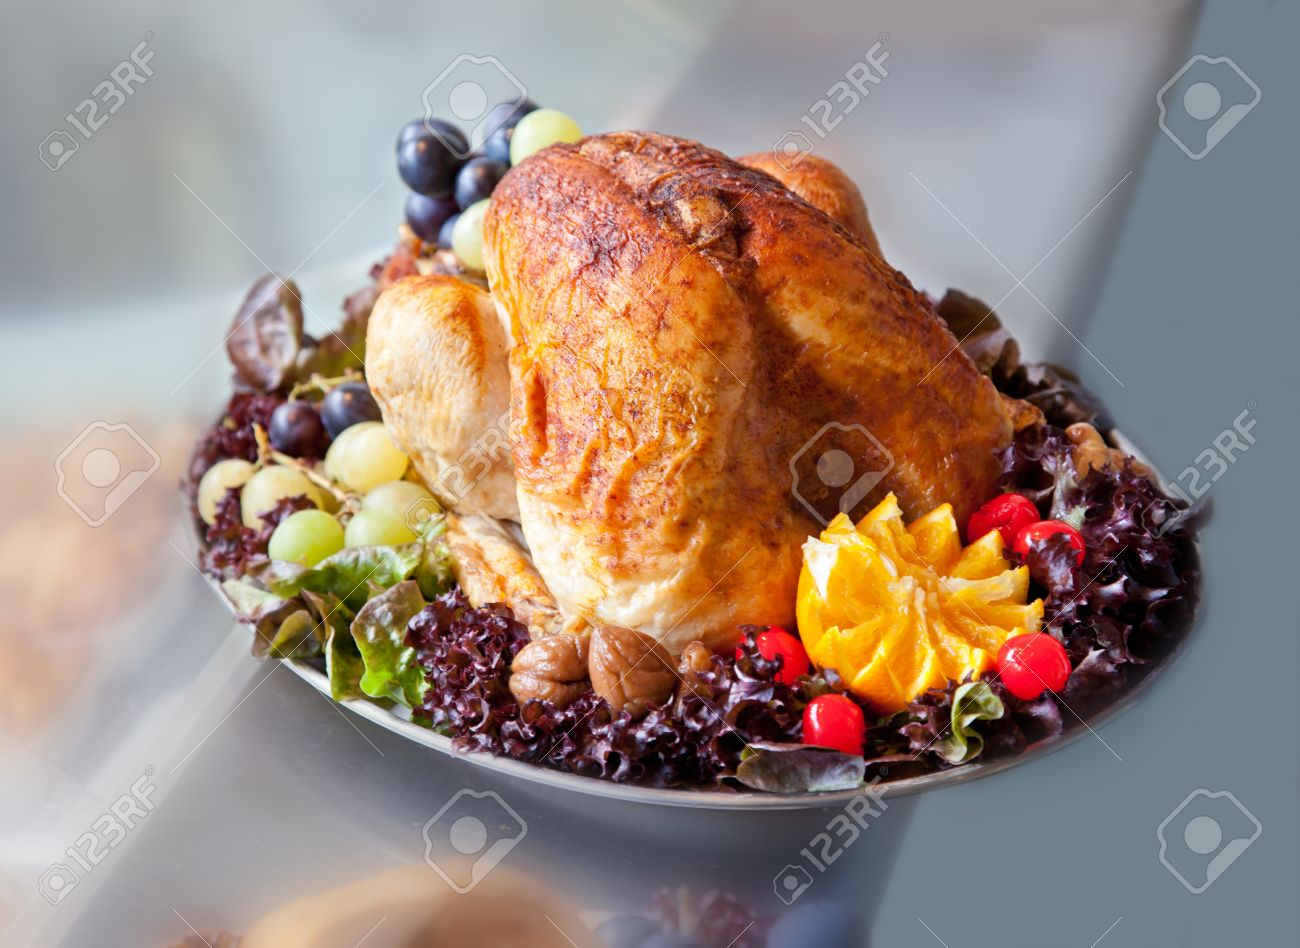 Stock Photo - turkey with fruit decoration on plate & Turkey With Fruit Decoration On Plate Stock Photo Picture And ...